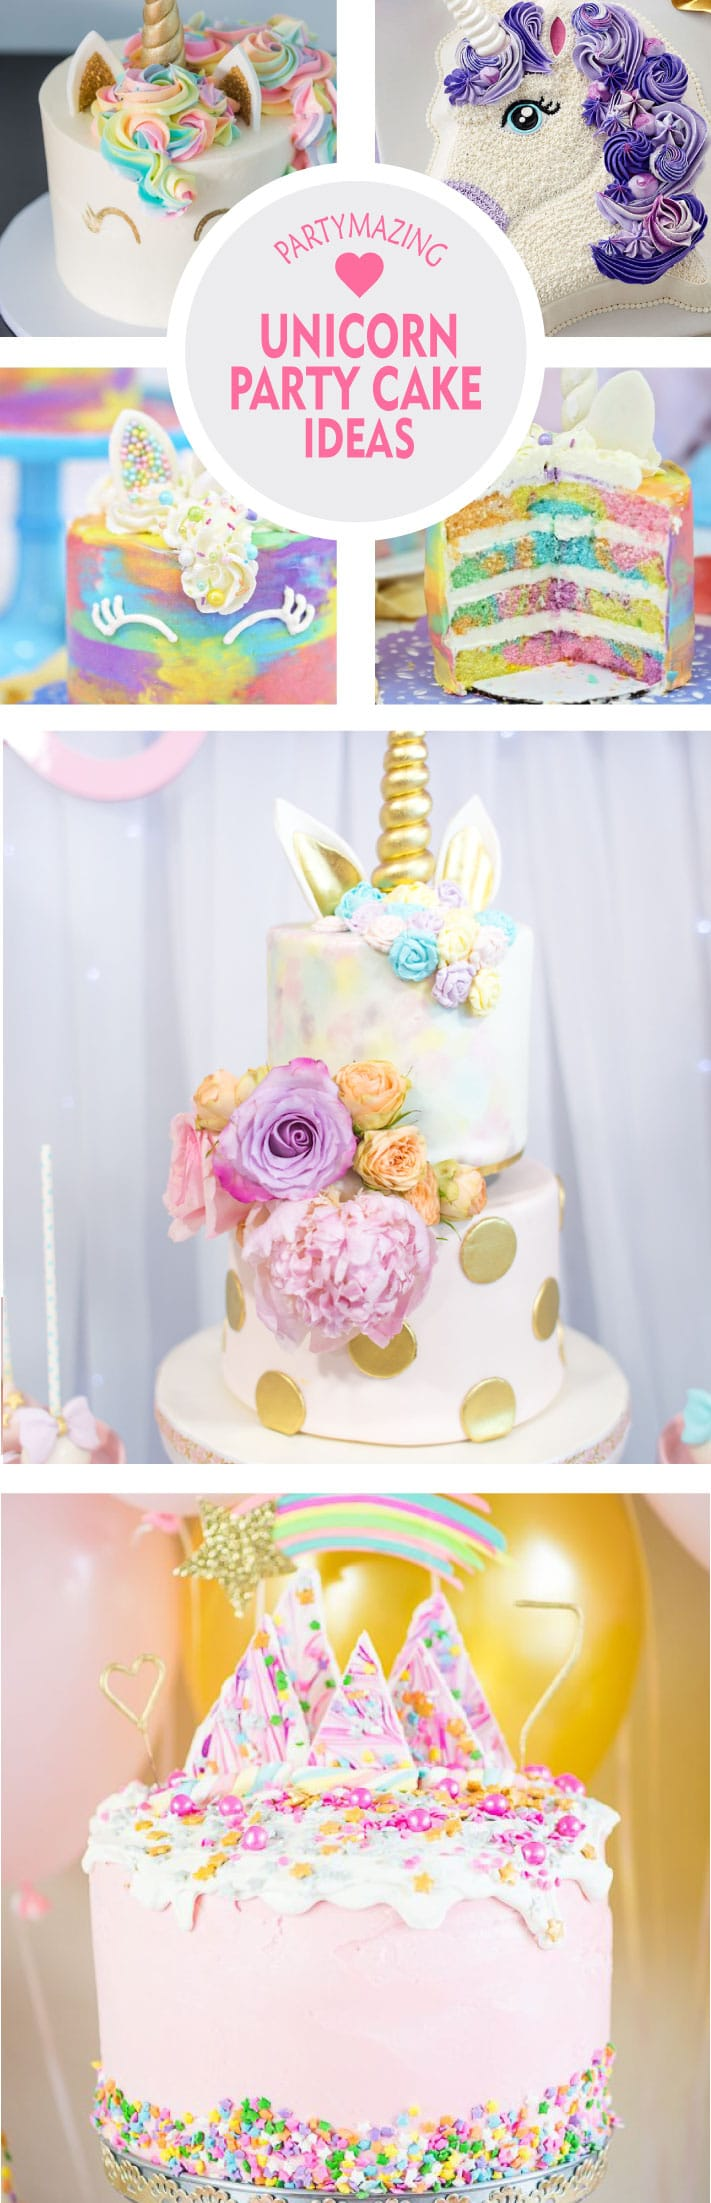 Admirable 12 Unicorn Party Cake Ideas Diy Cake Partymazing Funny Birthday Cards Online Aeocydamsfinfo